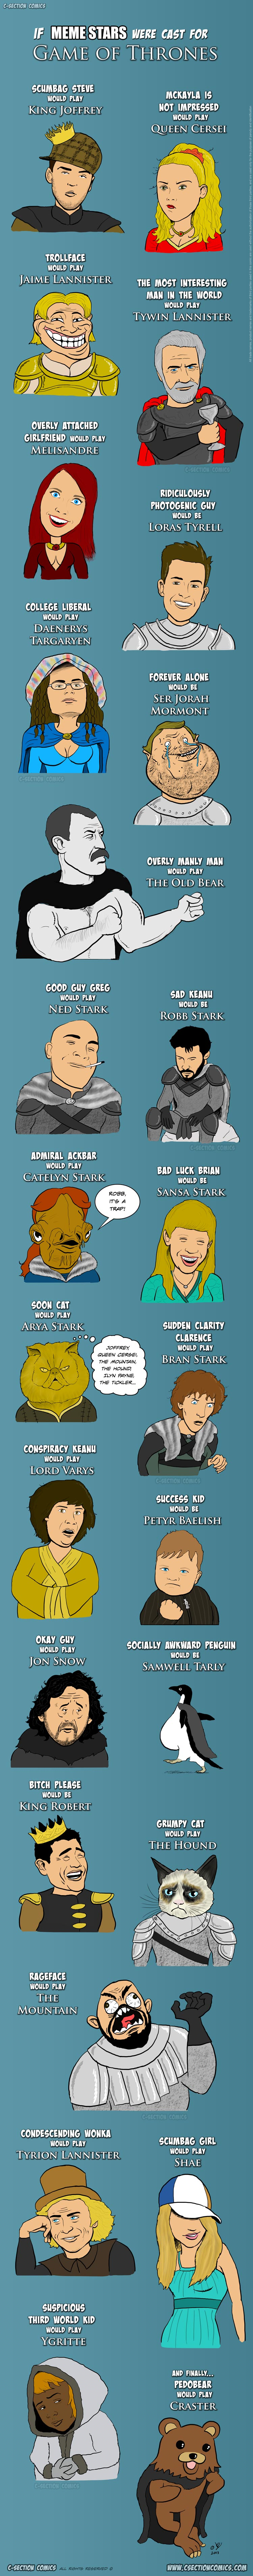 funny-pictures-comics-csectioncomics-memes-game-of-thrones